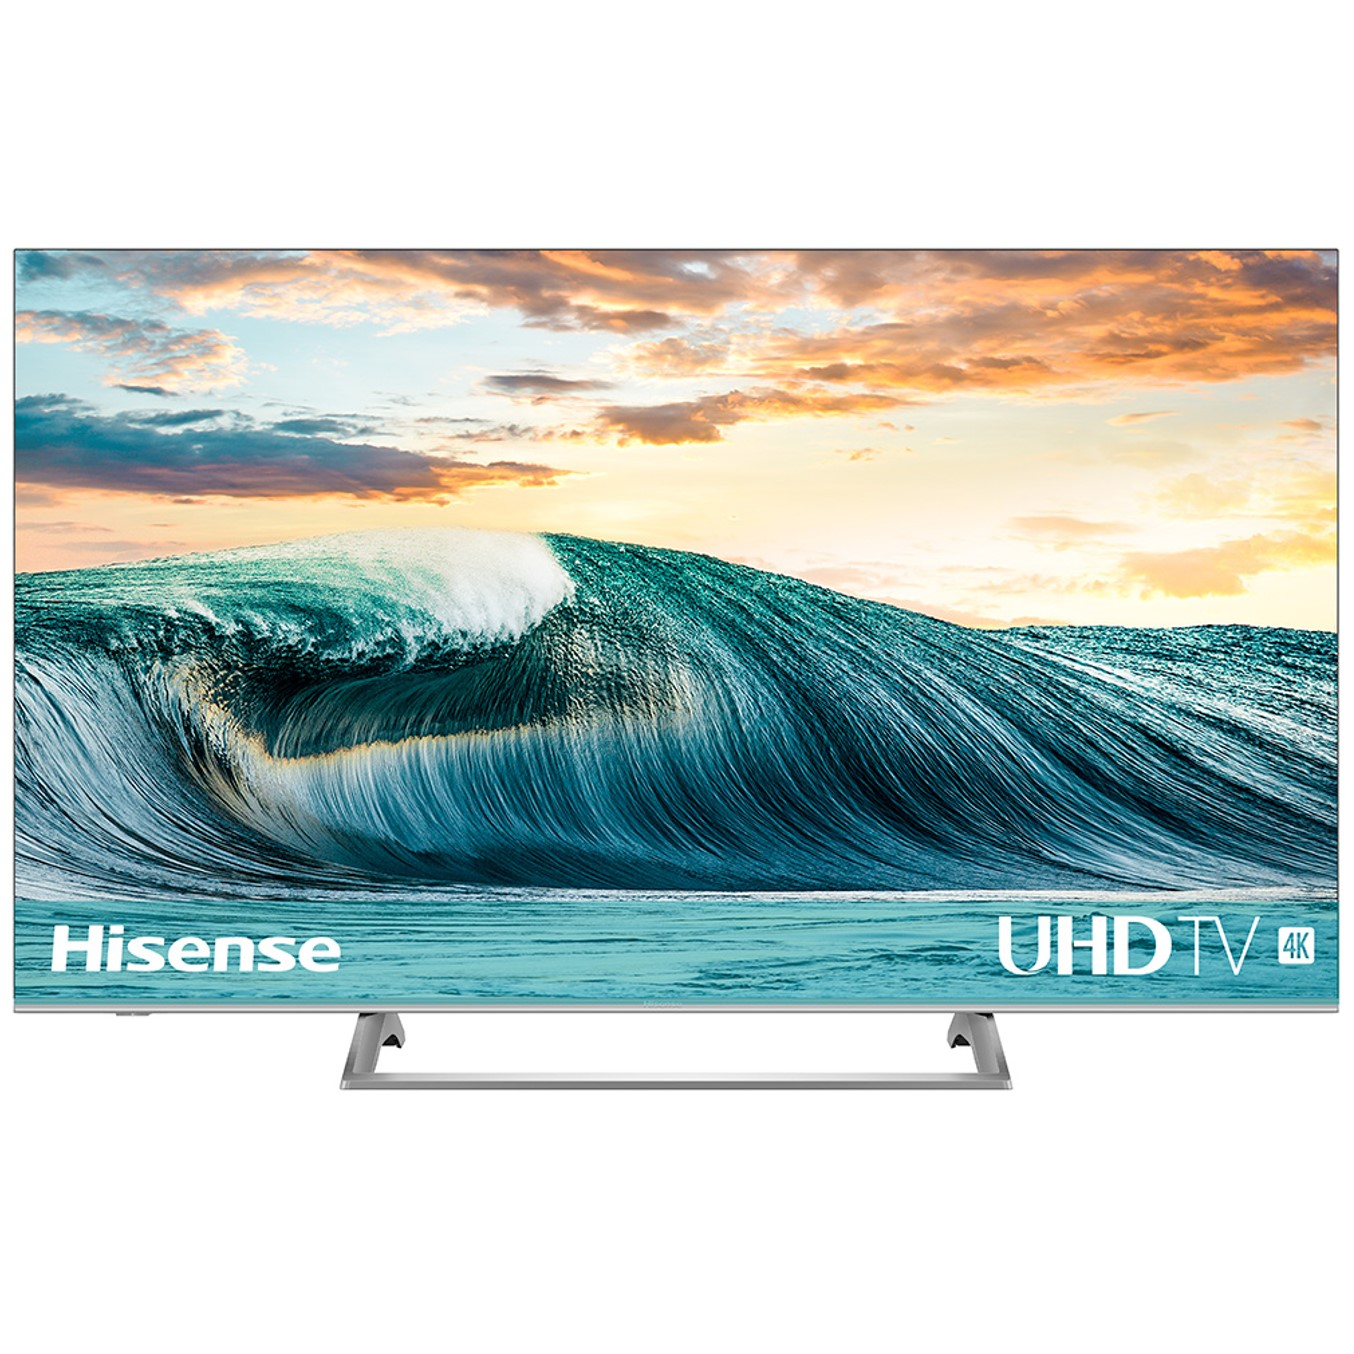 "TV HISENSE 50"" LED 4K UHD/ 50B7500/ HDR10/ SMART TV/ 3 HDMI/ 2 USB/ DVB-T2/T/C/S2/S/ QUAD CORE"